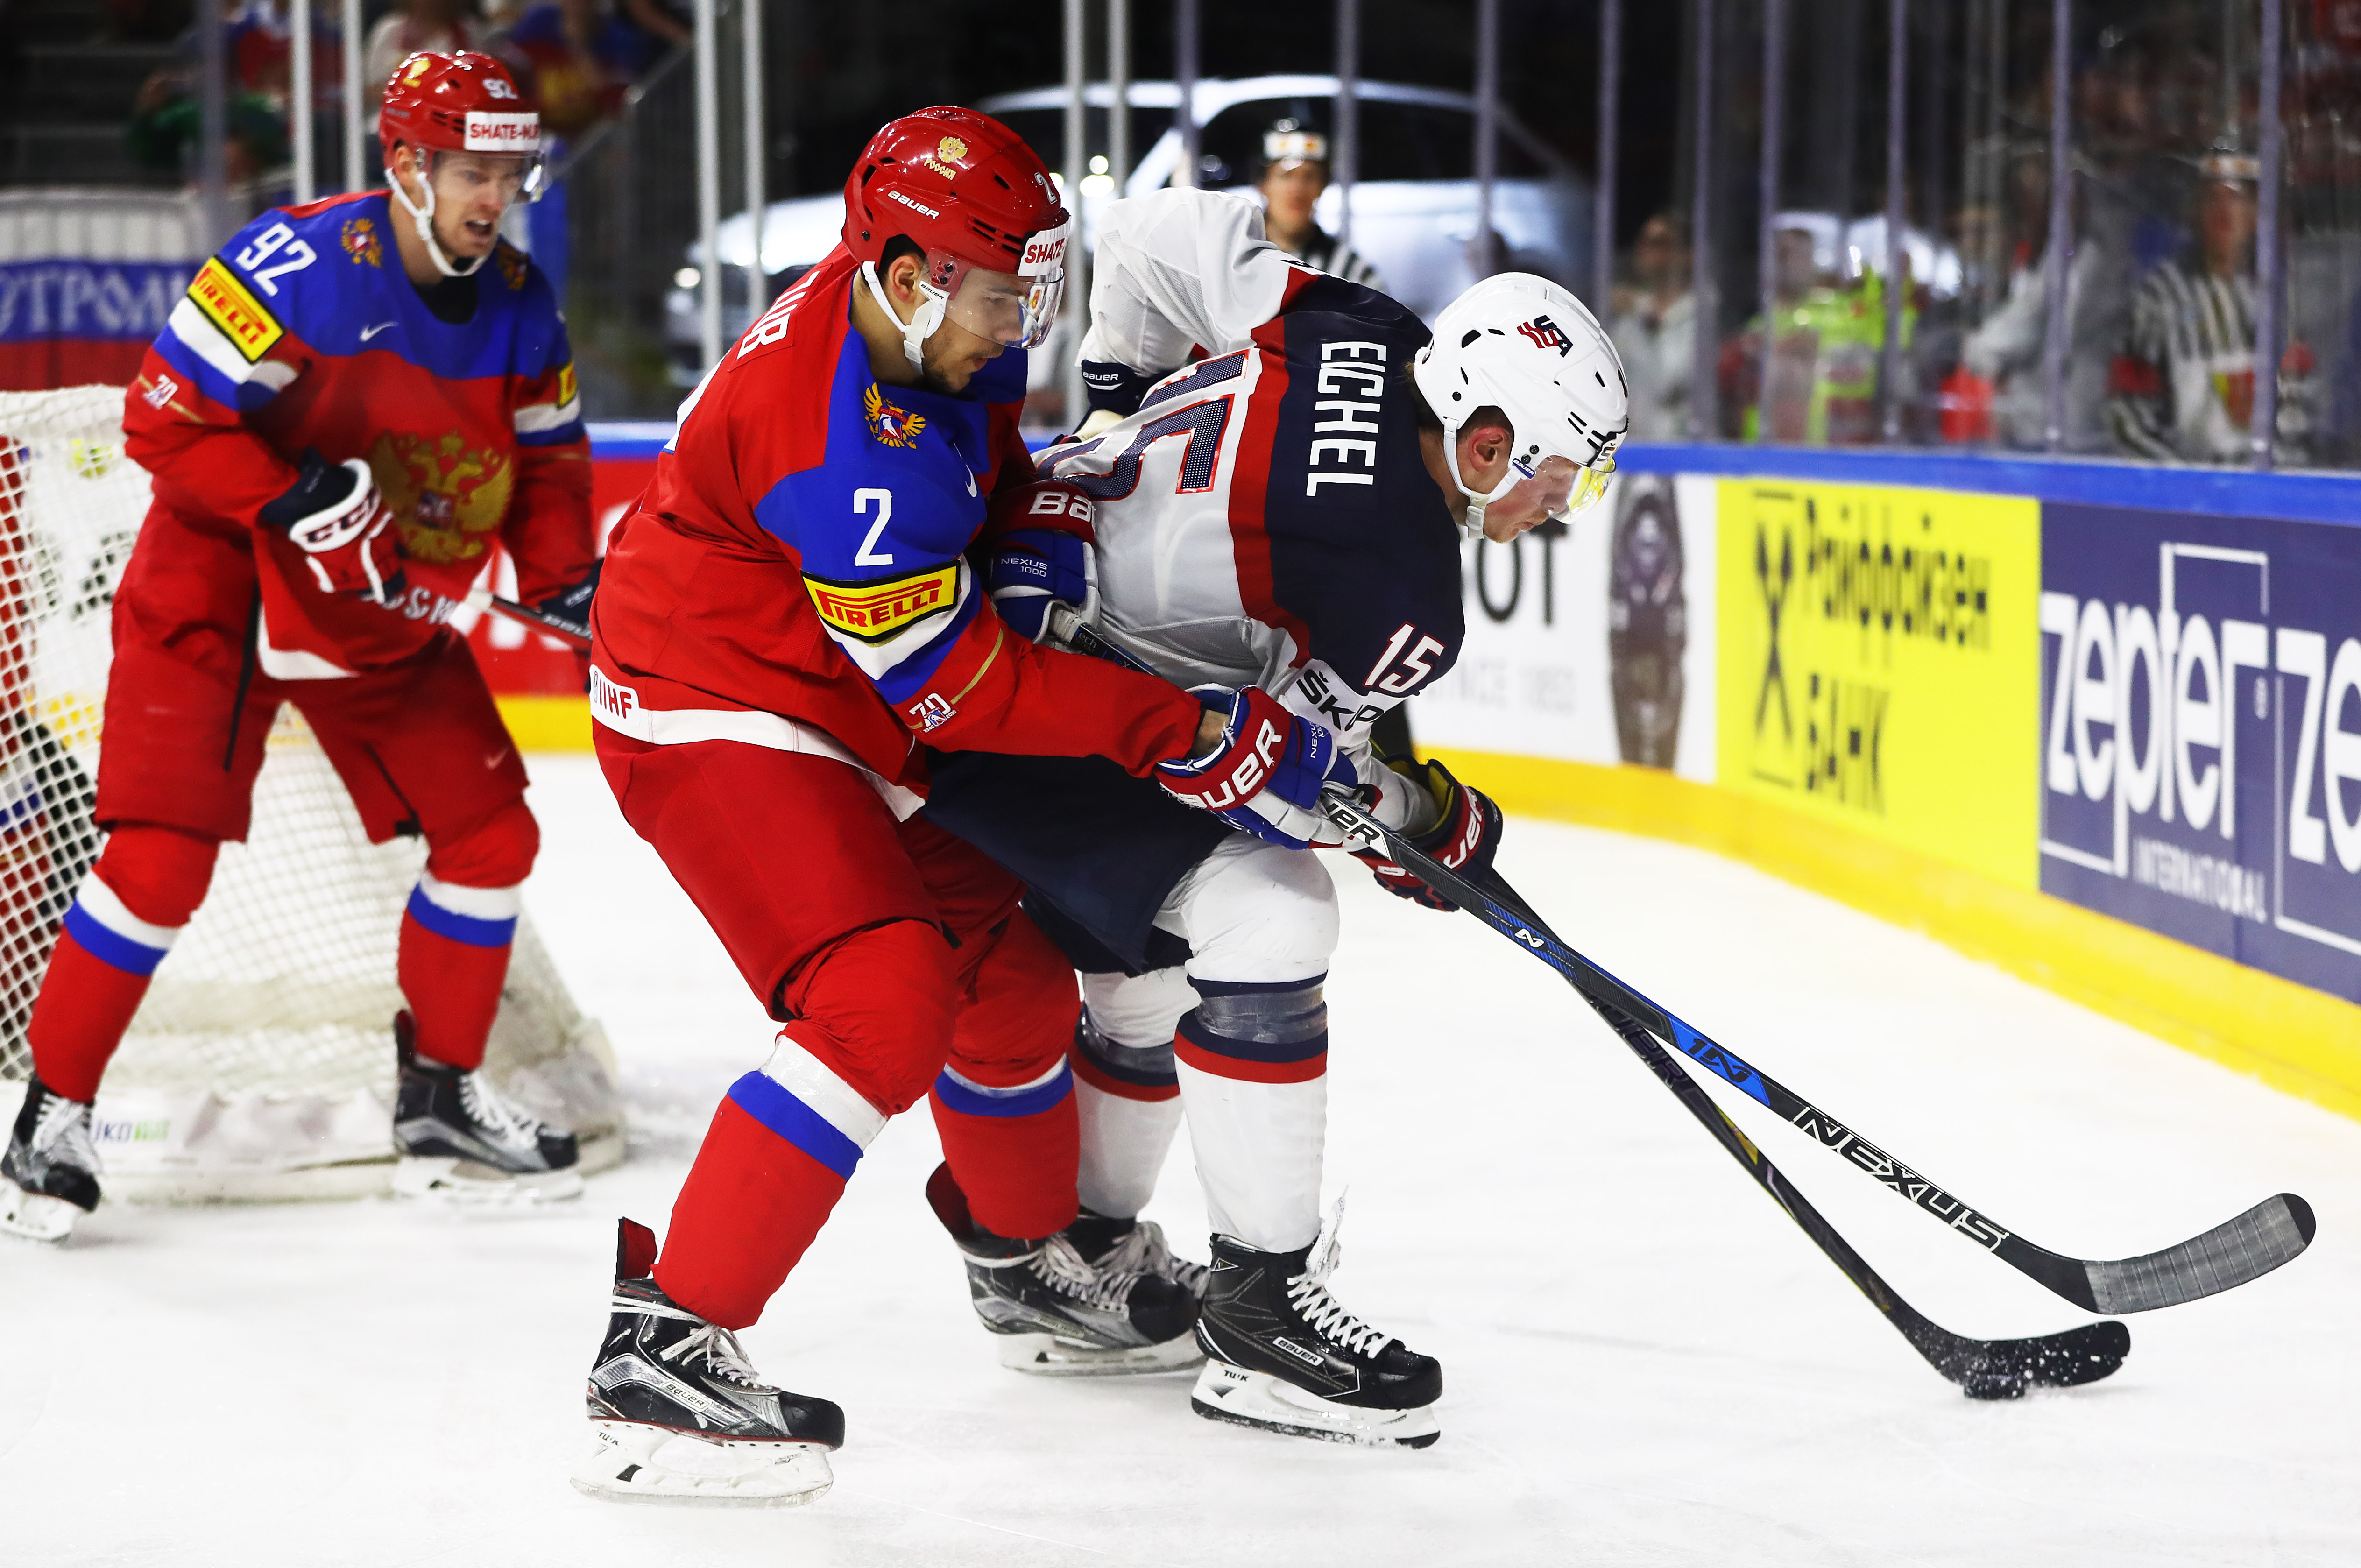 Jack Eichel holds off Artyom Zub of Russia during the United States' victory Tuesday. (Getty Images)